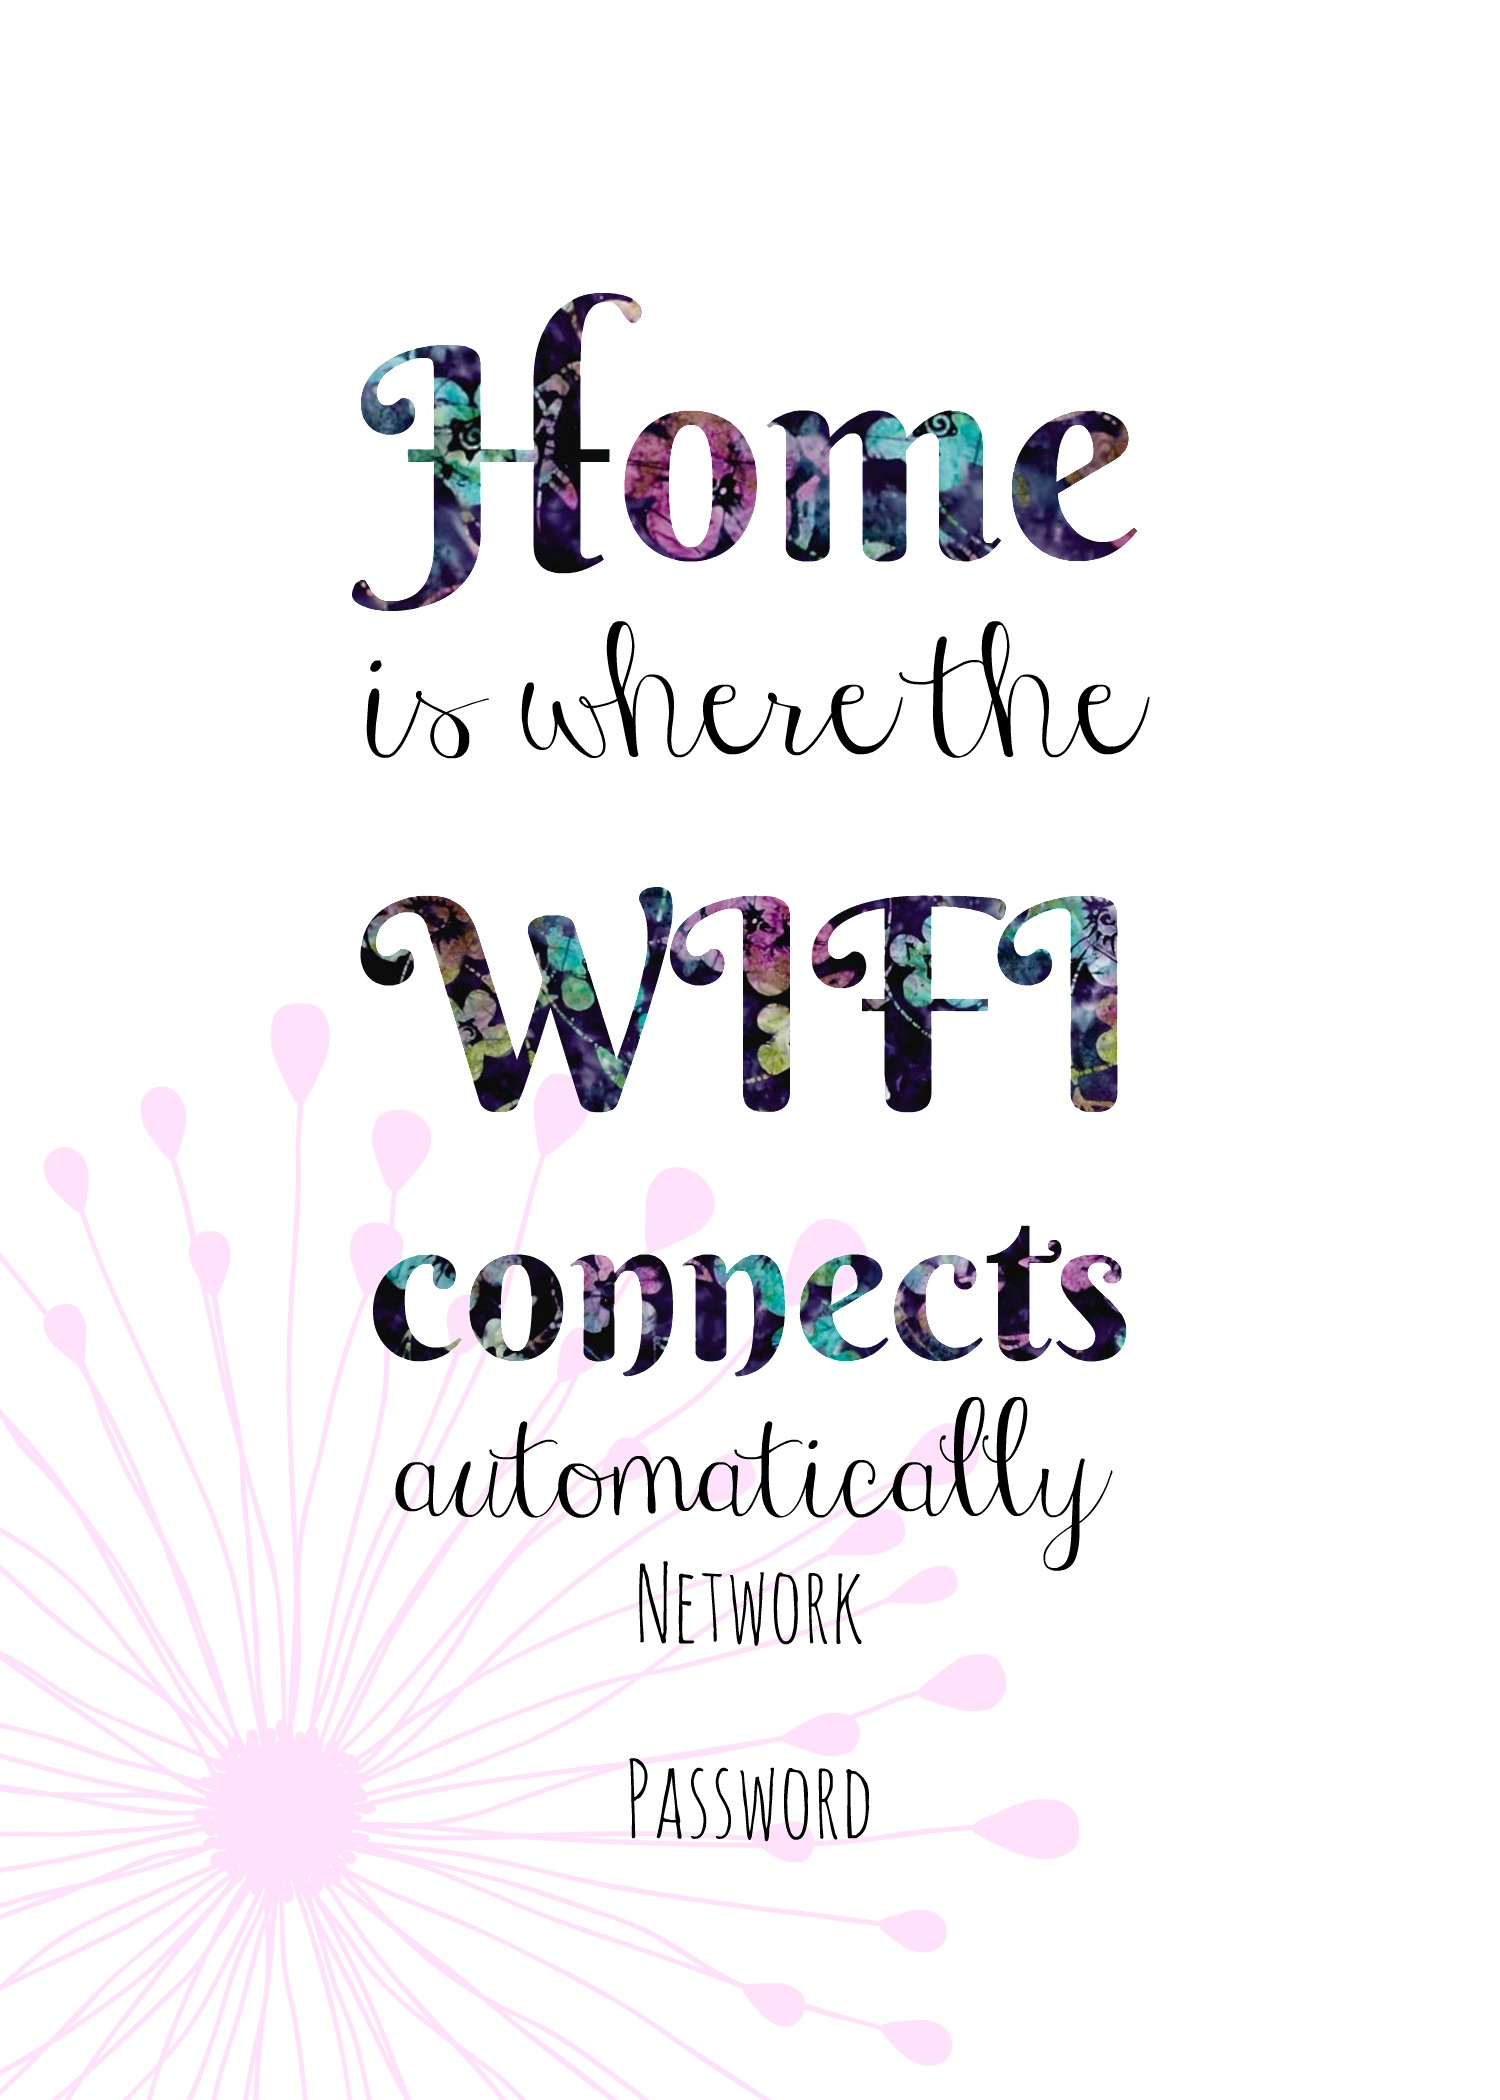 Free Printable Wifi Sign, Guest Room Ideas. - Free Printable Wifi Sign